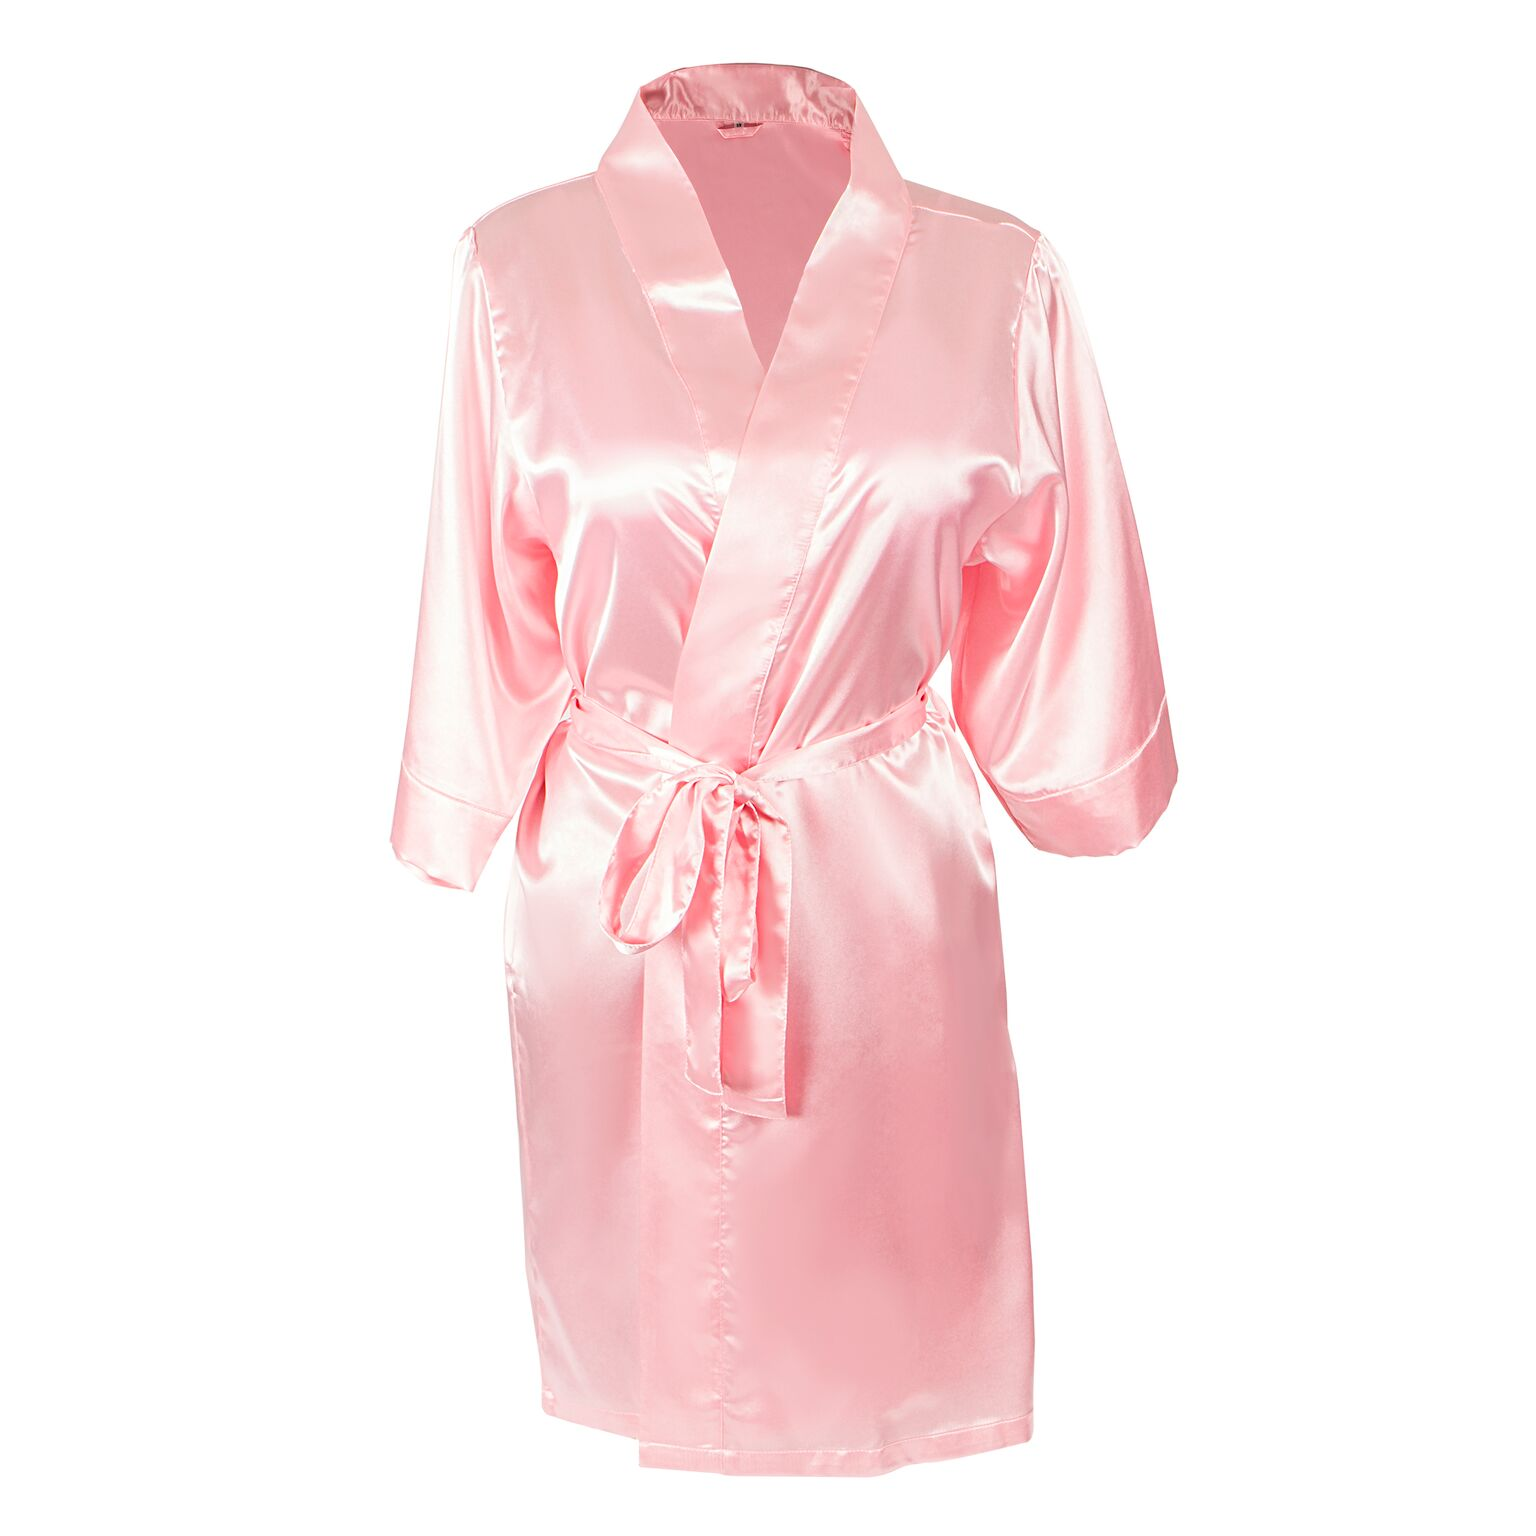 Cathys Concepts 1804P-LXL-ST Team Bride Satin Robe, Pink - Large & Extra Large